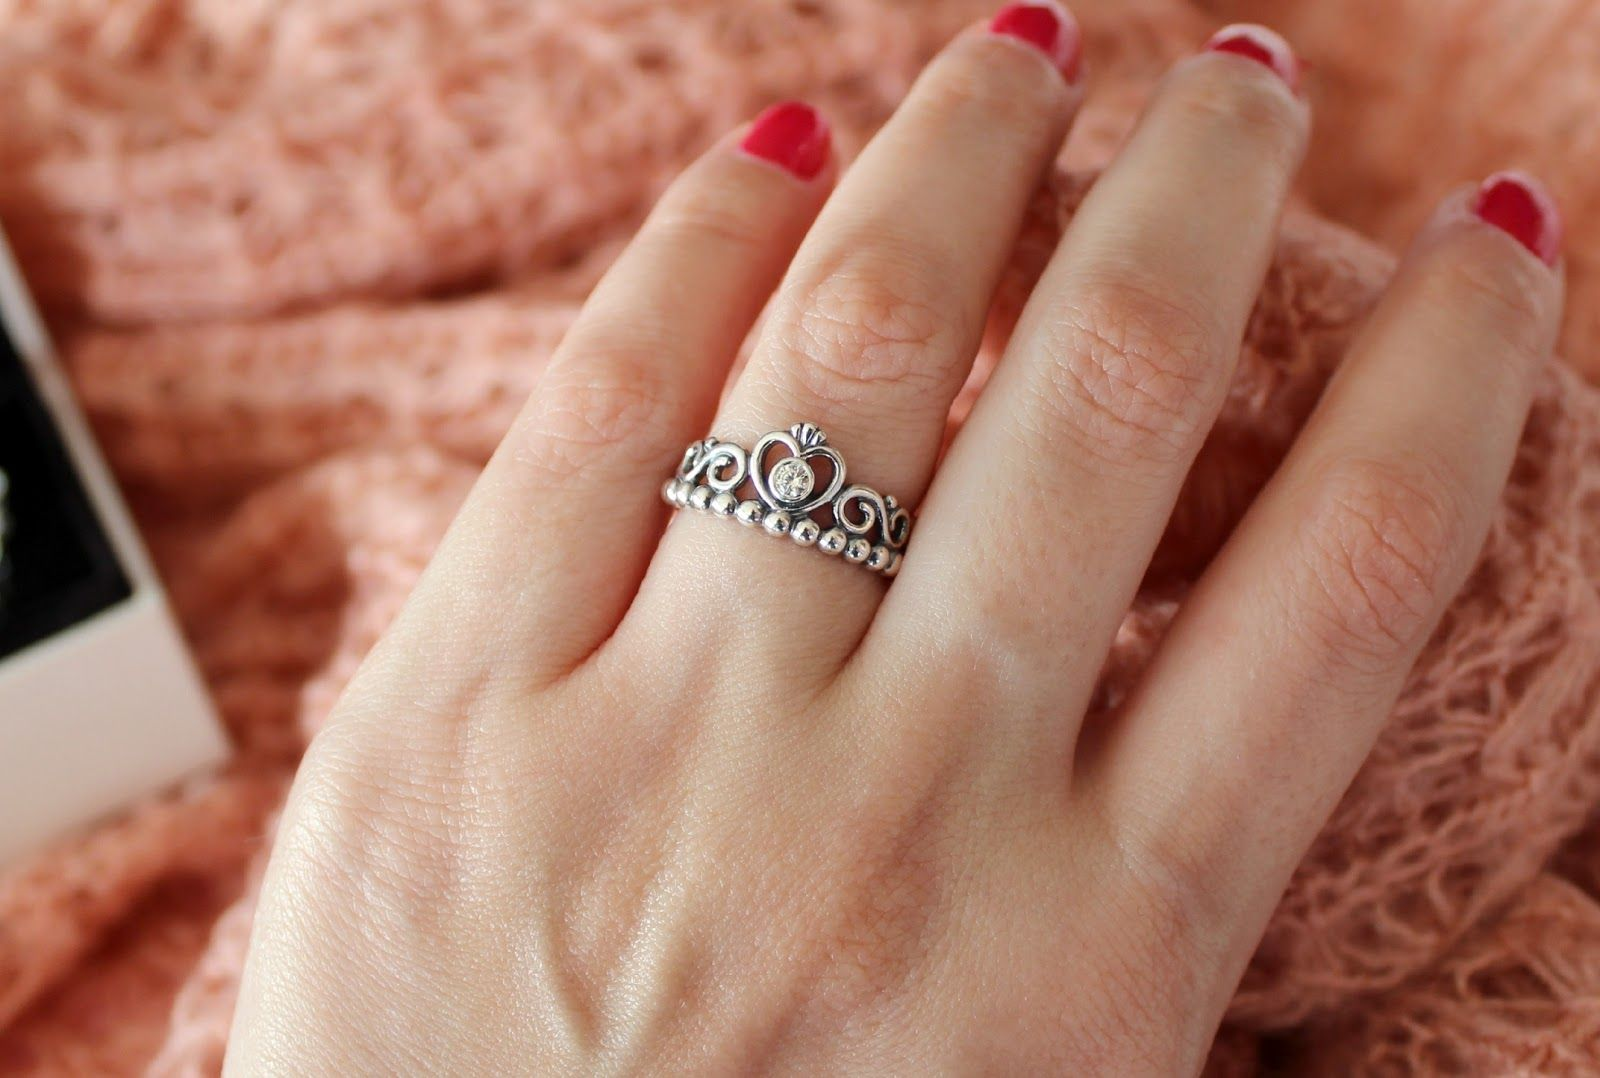 9bf21dbfb69866 my princess ring from pandora. my boyfriend better find out about this. lol